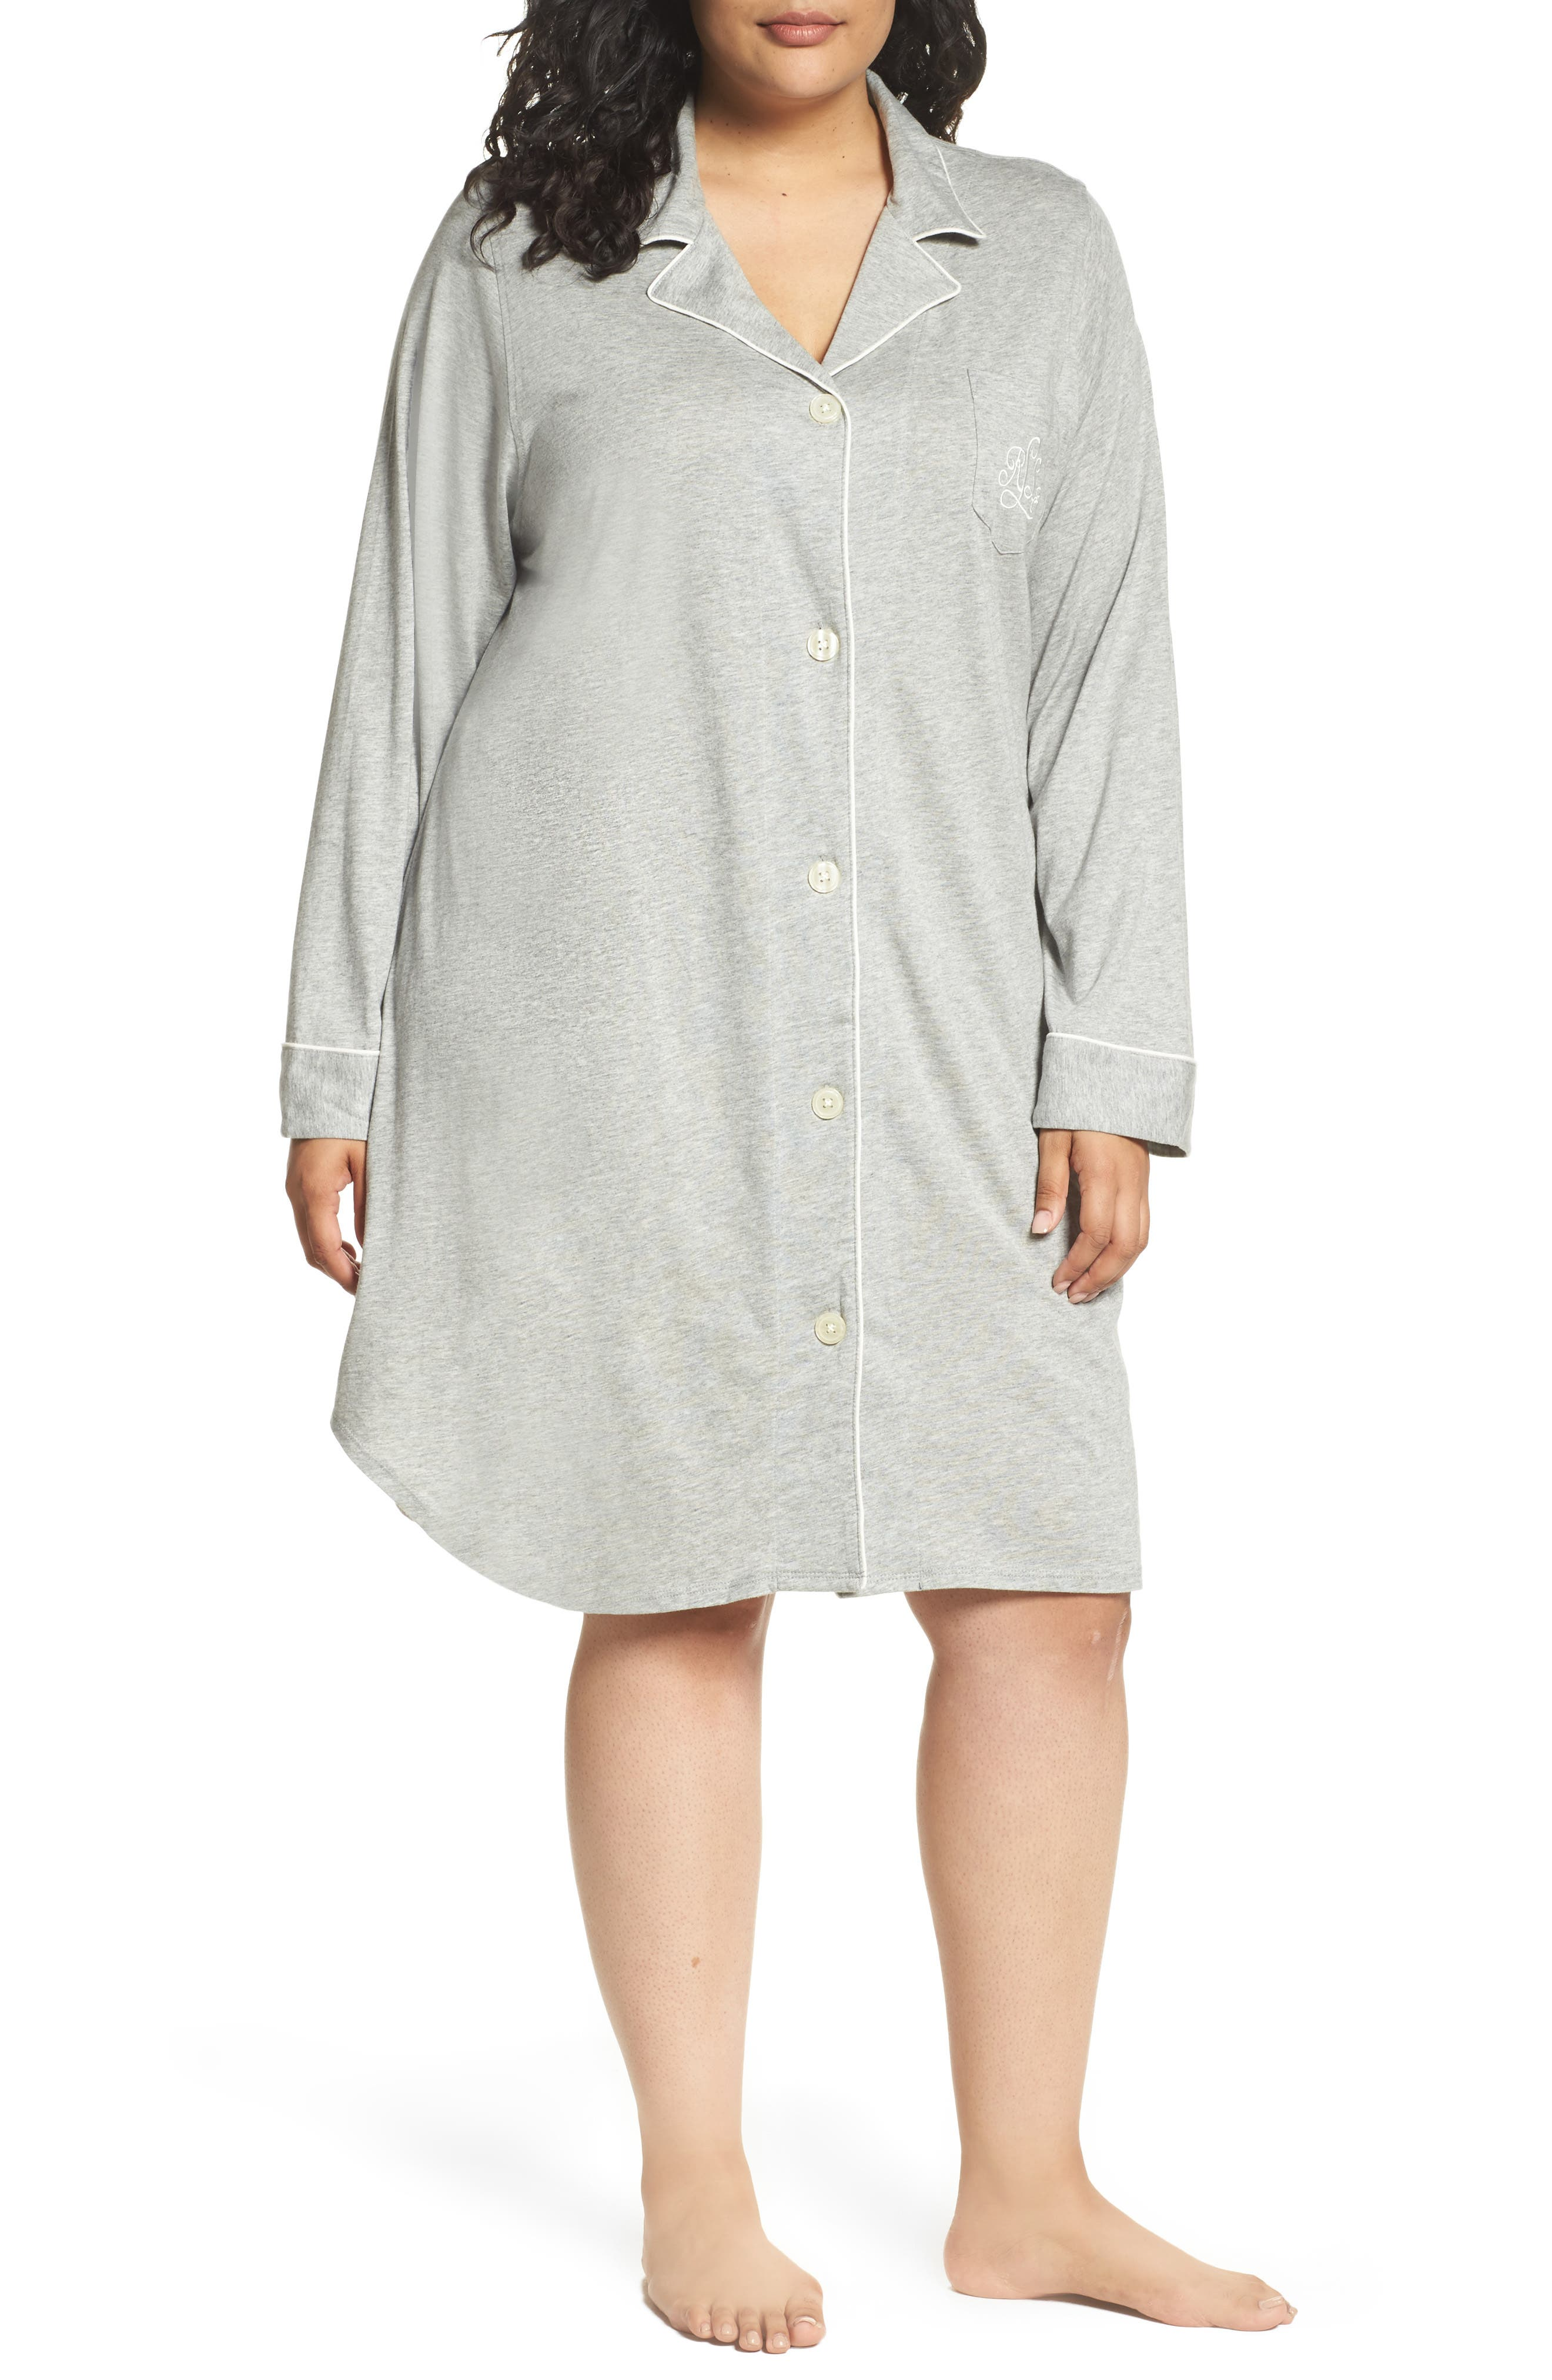 Alternate Image 1 Selected - Lauren Ralph Lauren Knit Nightshirt (Plus Size) (Online Only)